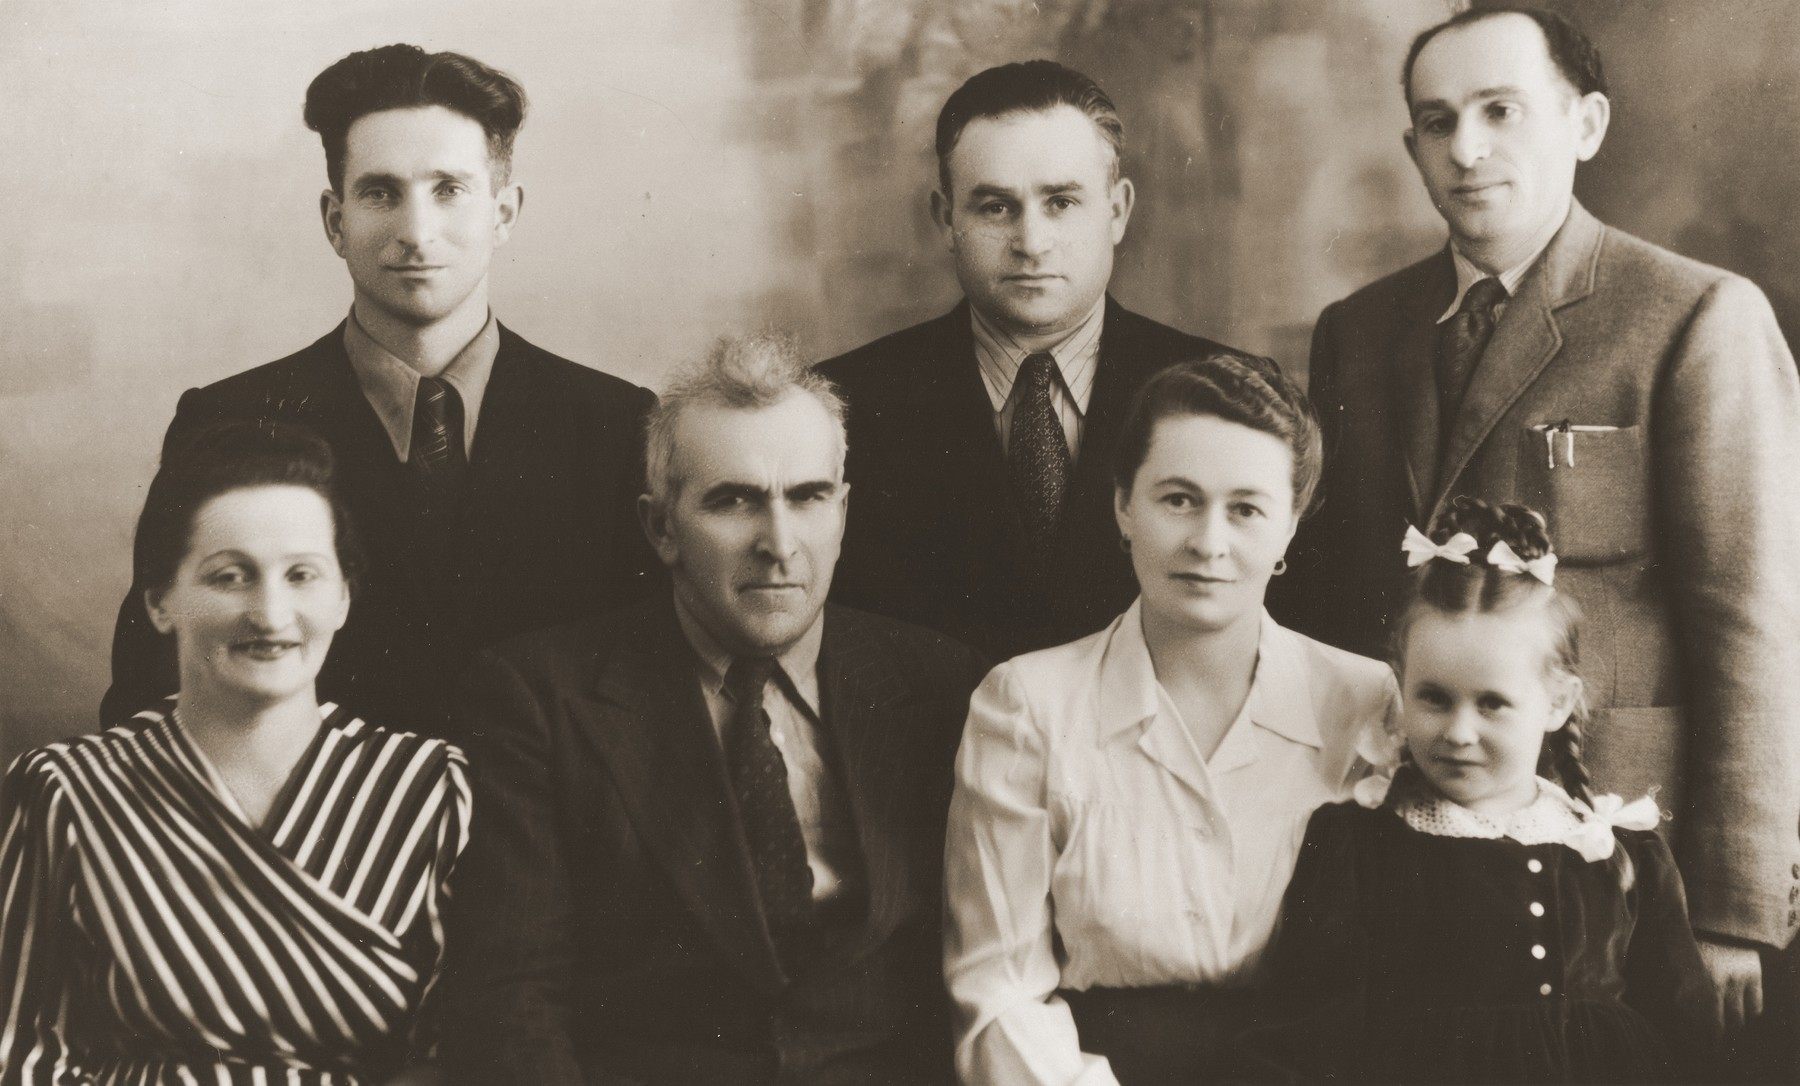 Studio portrait of Jewish DPs in the Cremona displaced persons camp.  Among those pictured are: Nachem Milstein, Chaim and Chaika Katz, Aaron Pelc, and Motel, Zelda and Masha Leikach.